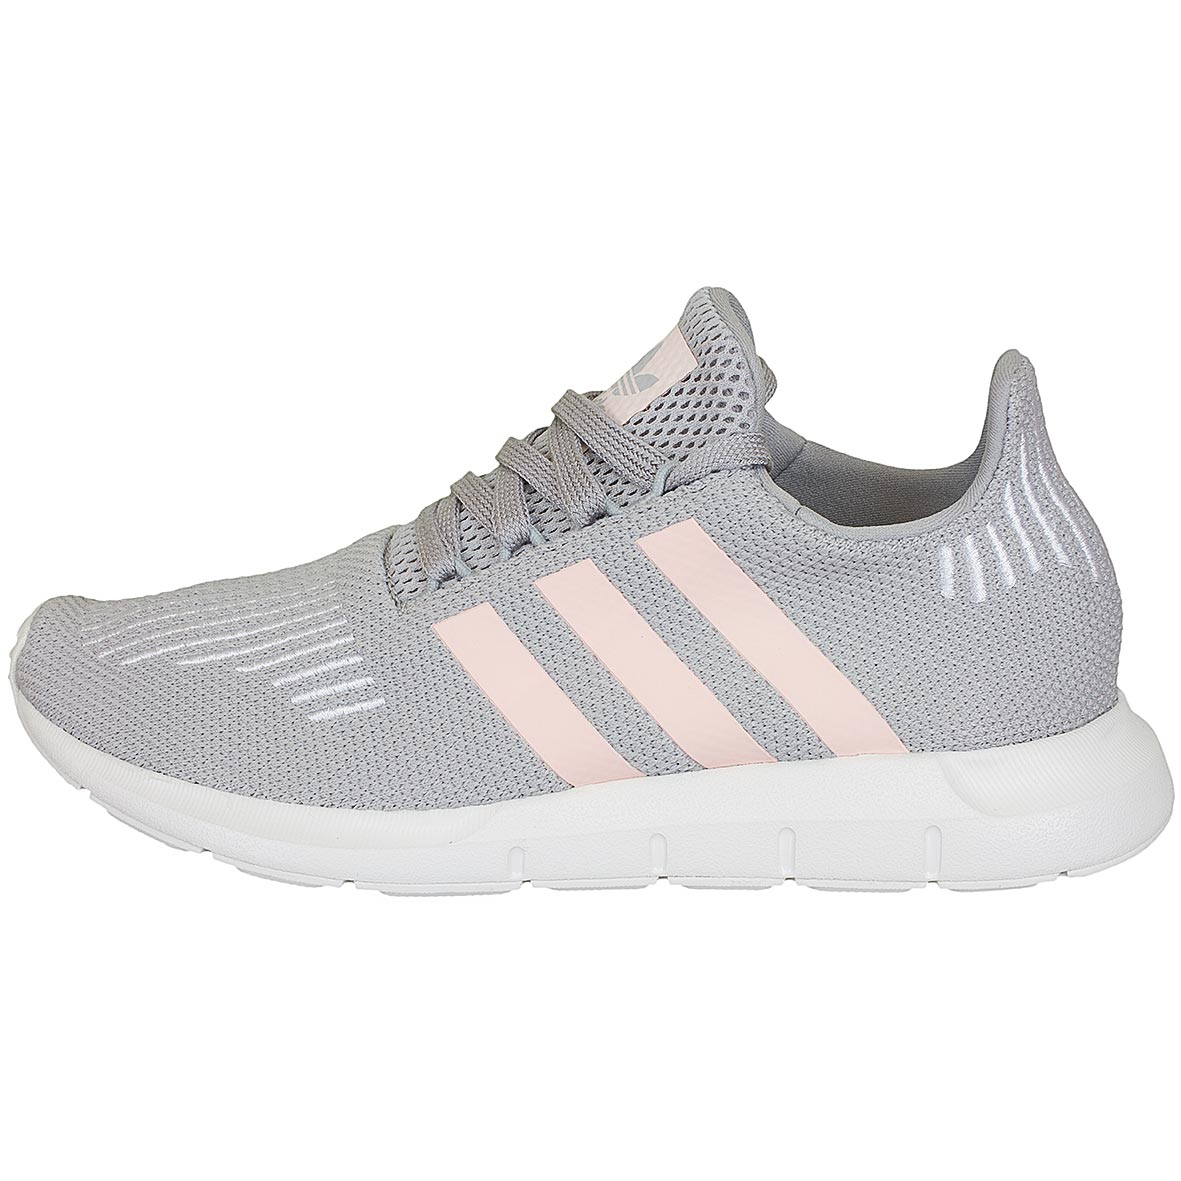 ☆ Adidas Originals Damen Sneaker Swift Run grau/pink - hier bestellen!